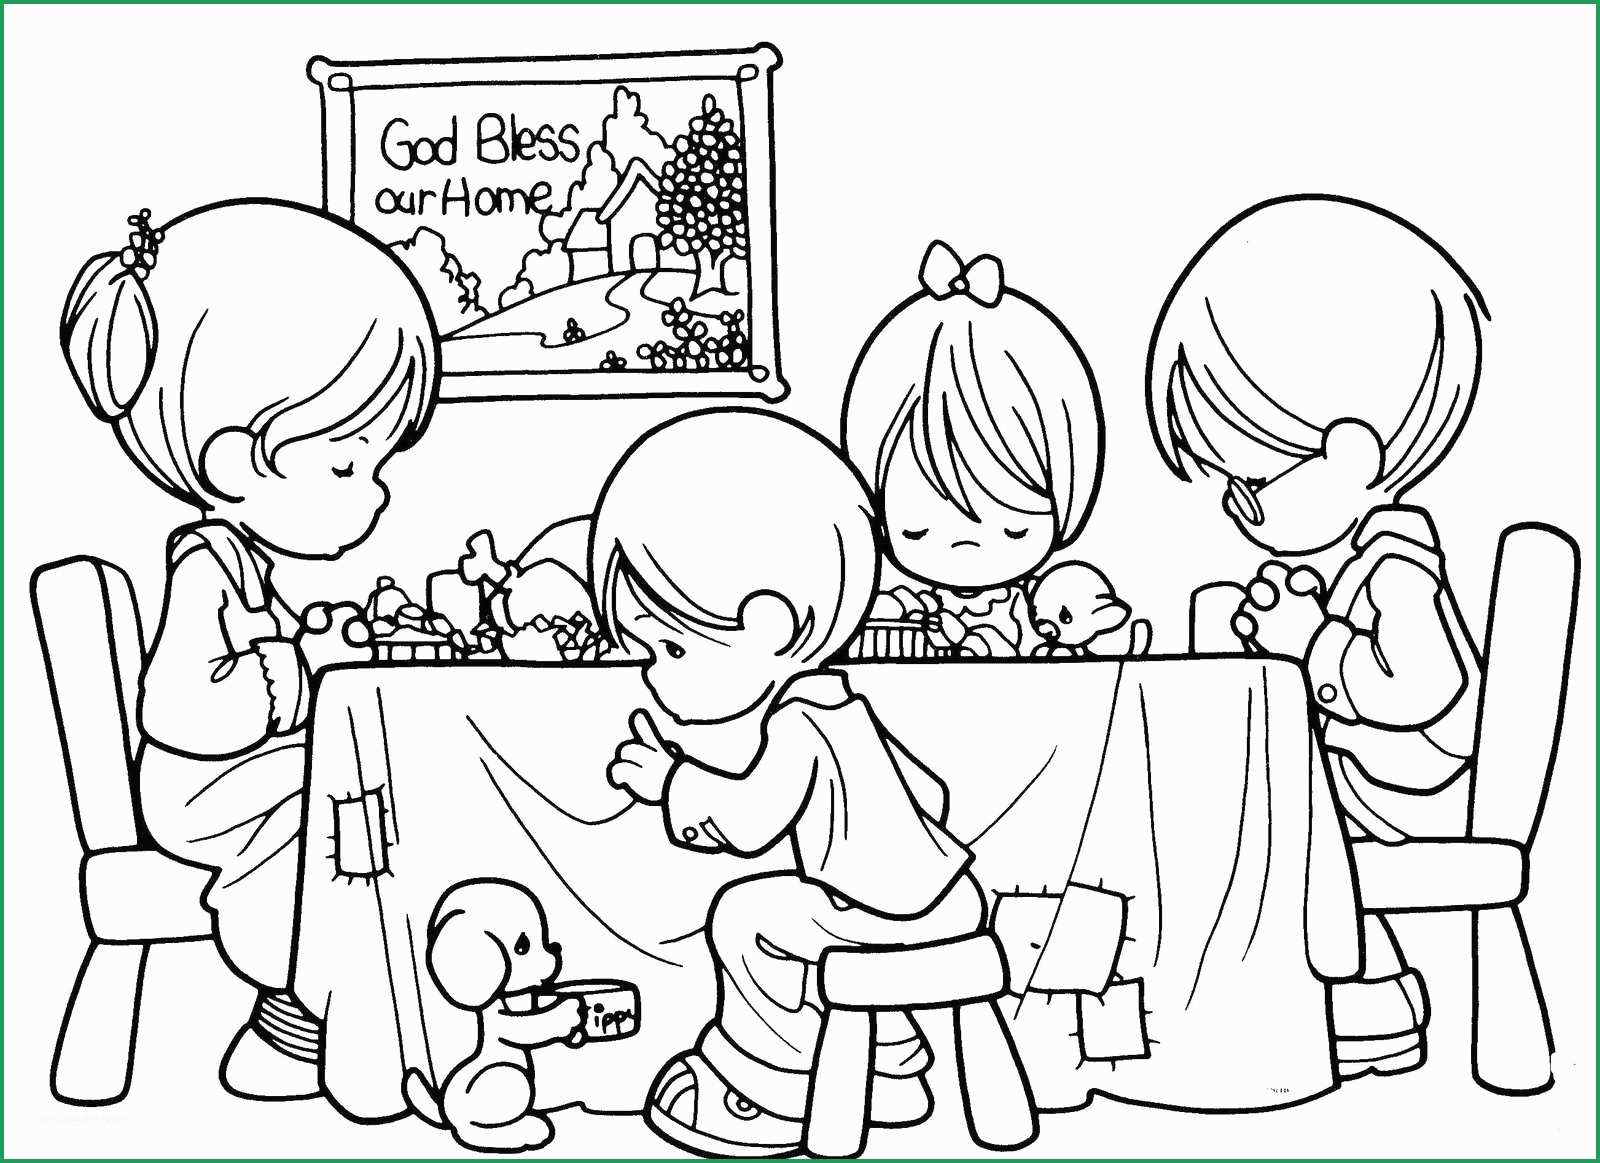 Biblical Coloring Pages Lovely Free Printable Christian Coloring - Free Printable Christian Coloring Pages